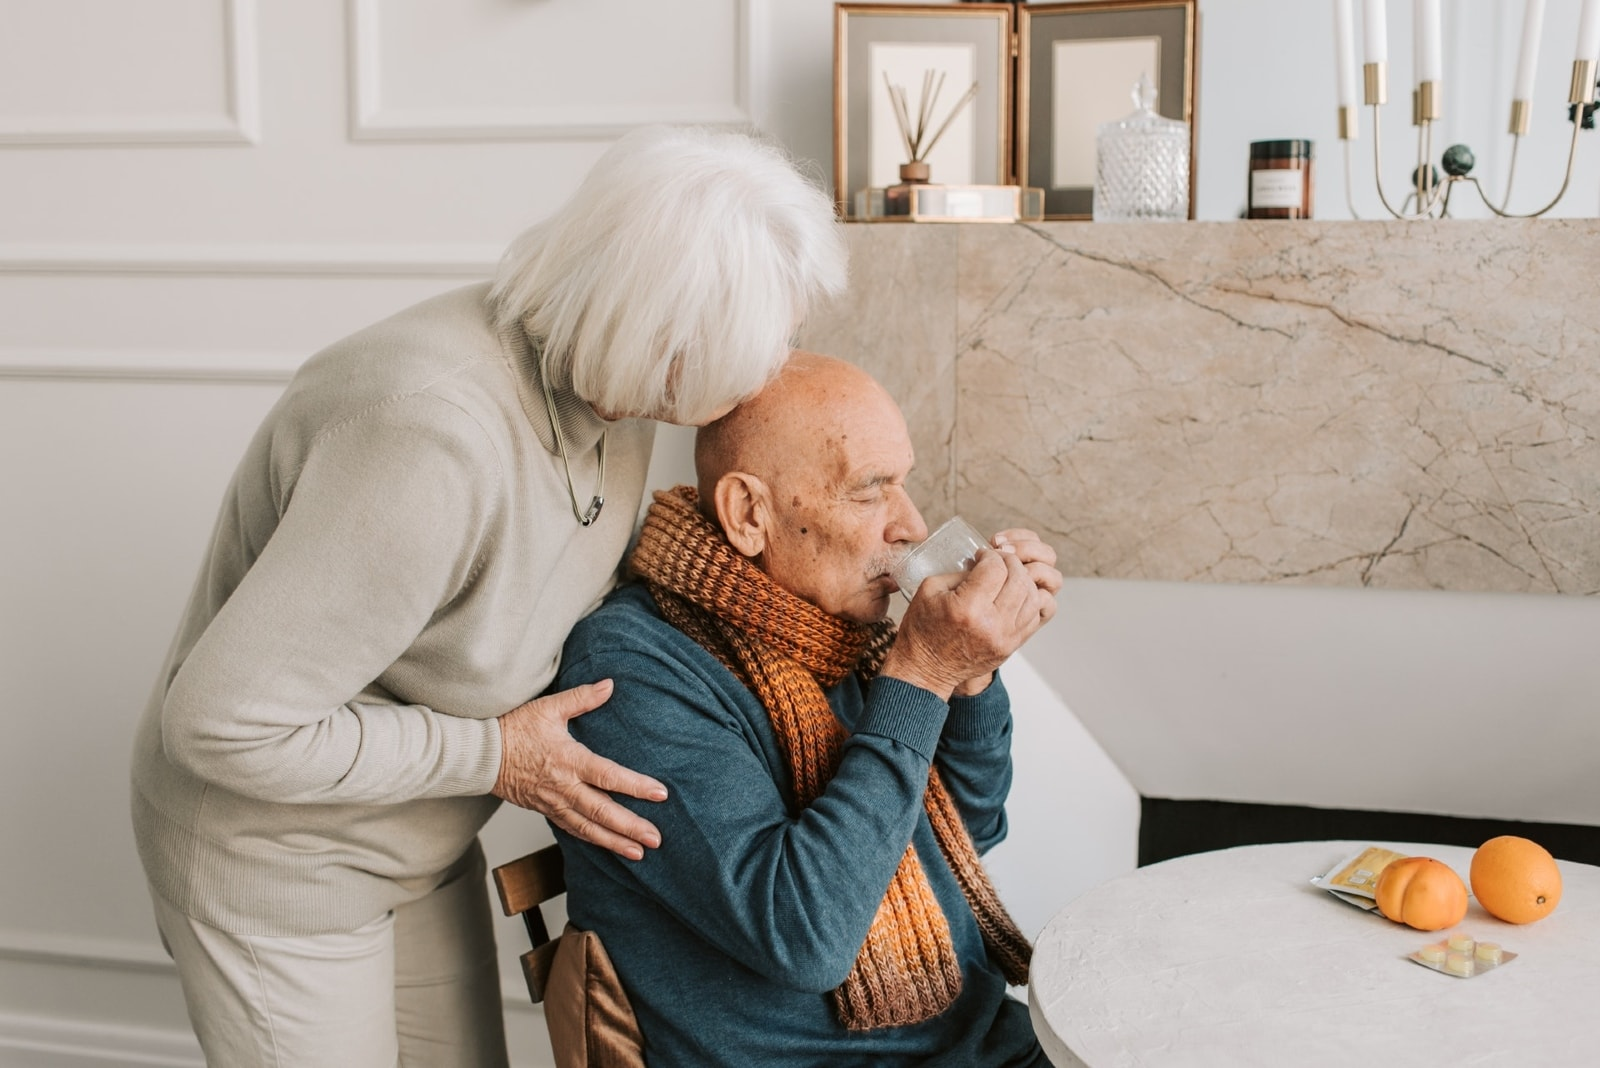 woman kissing man's head while standing indoor